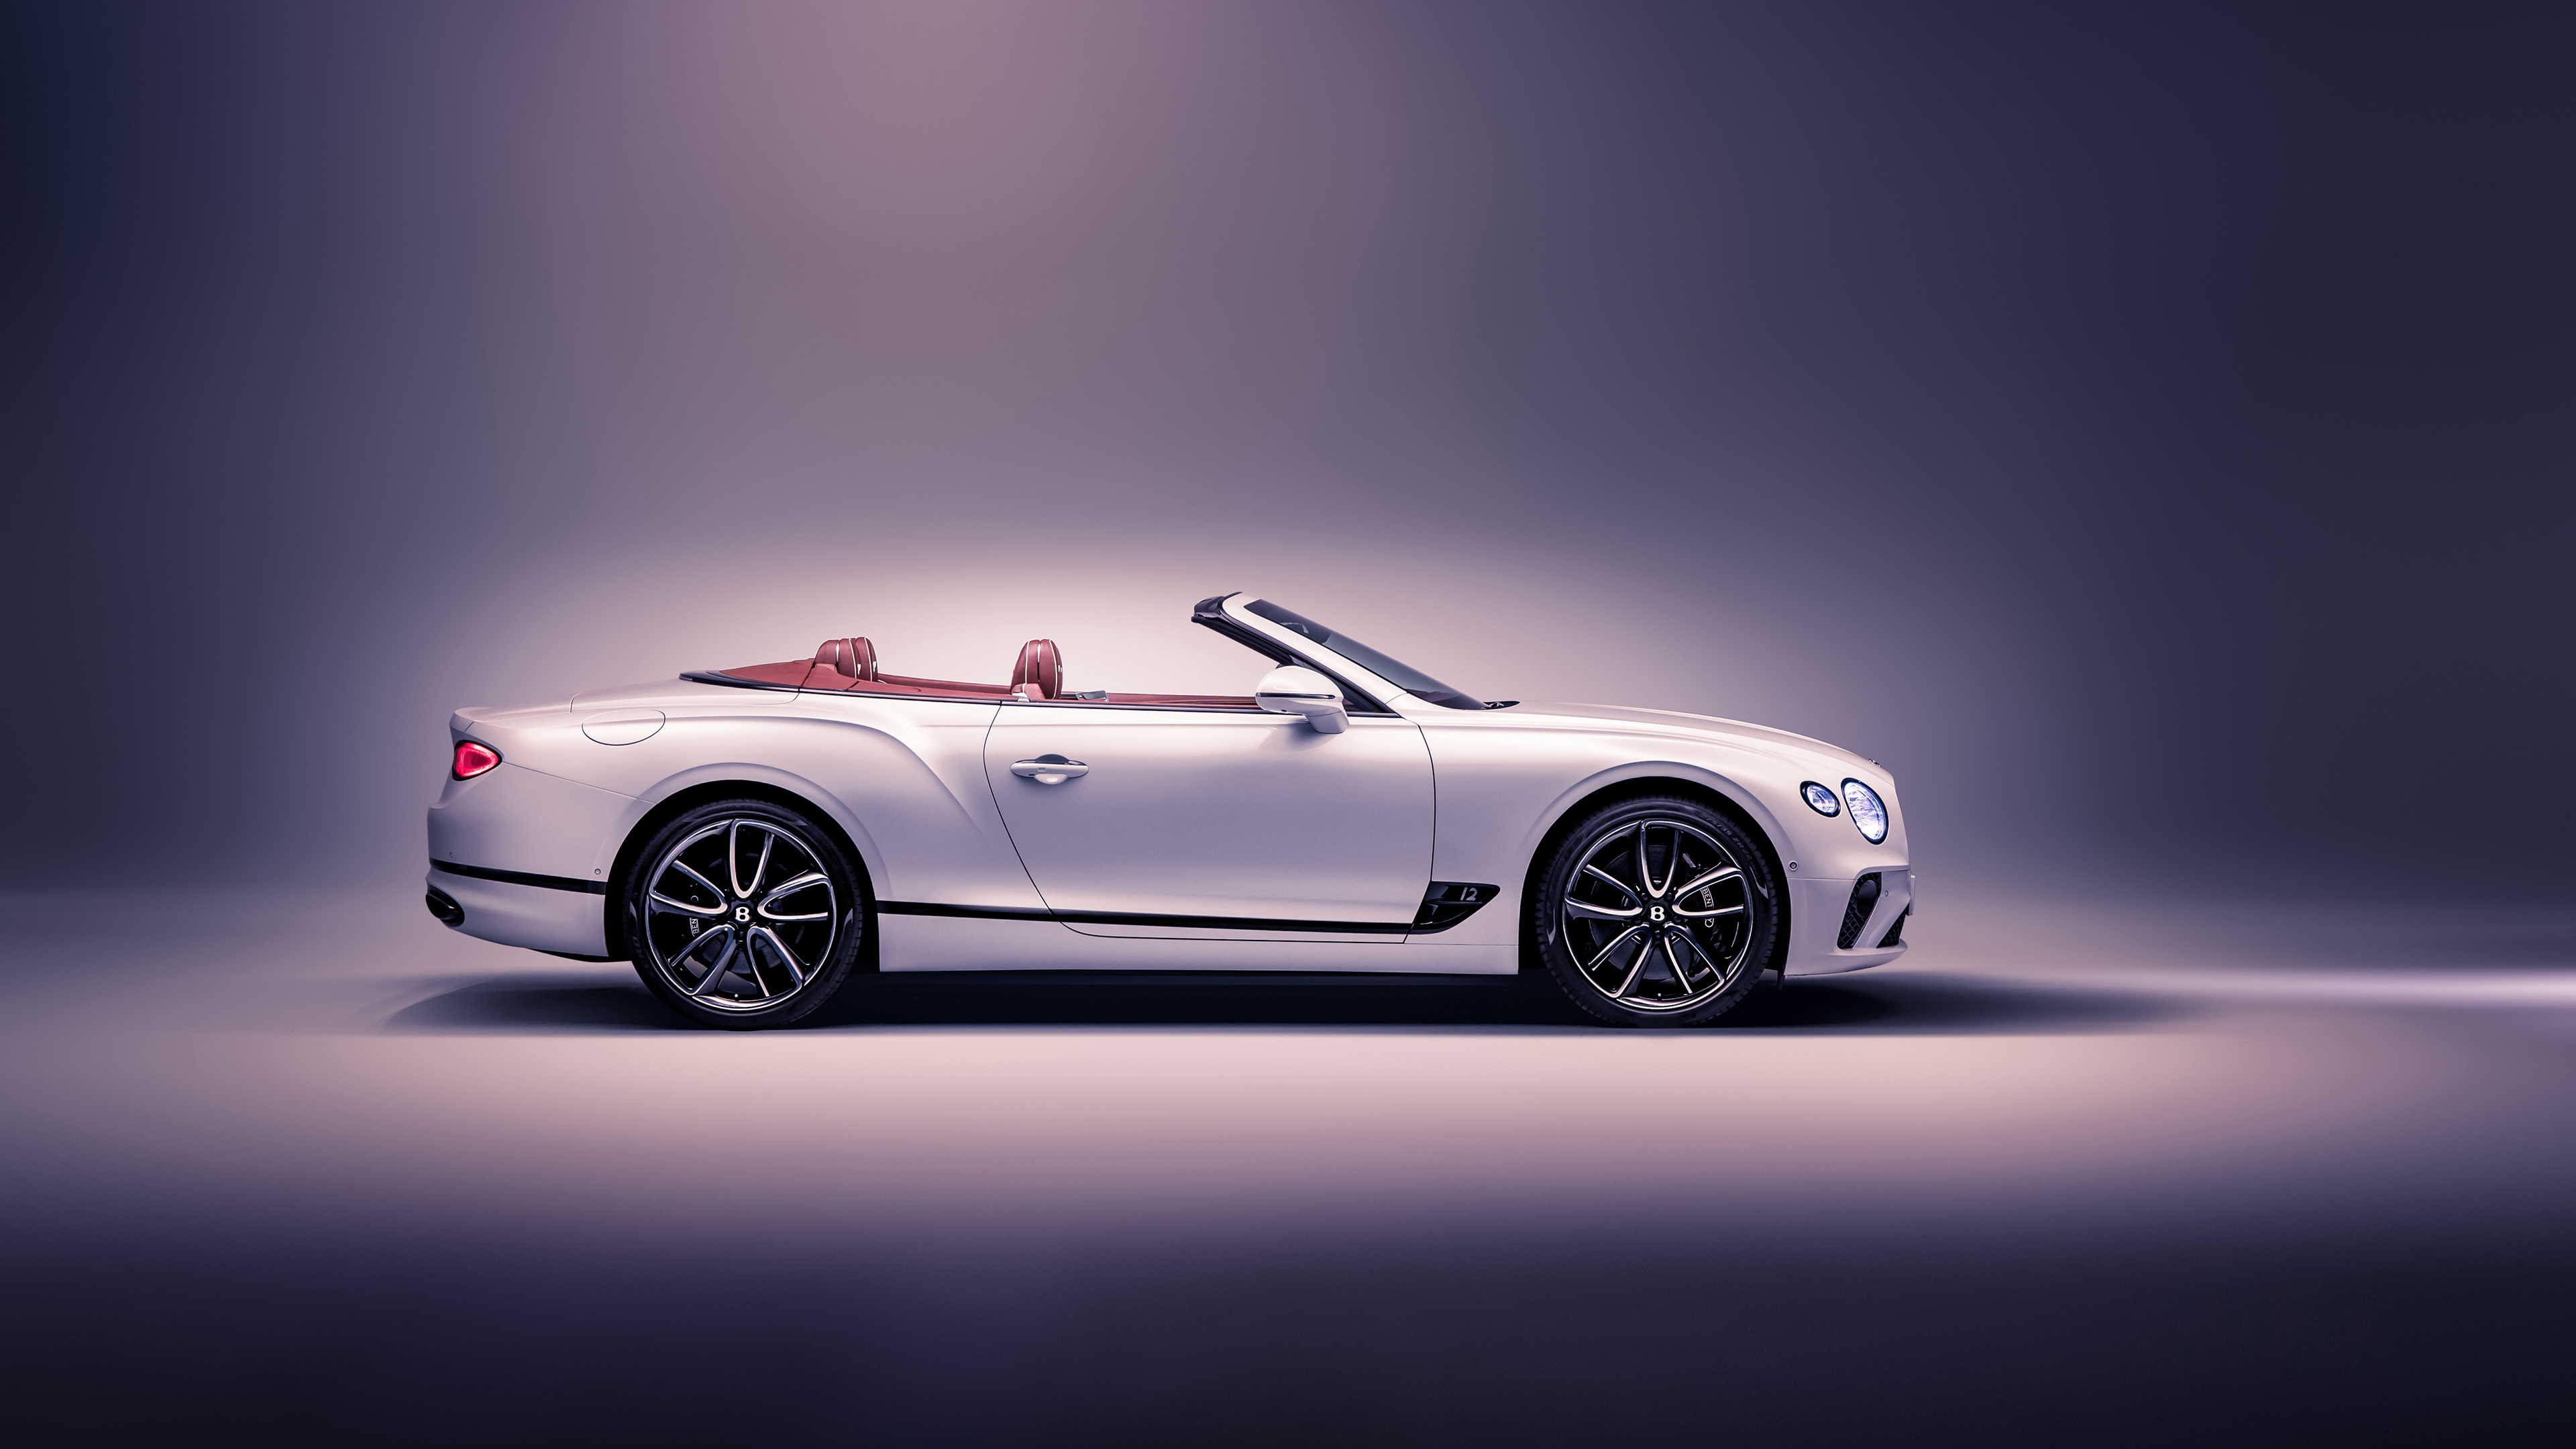 bentley continental gt convertible 2019 side view 4k 1546361874 - Bentley Continental GT Convertible 2019 Side View 4k - hd-wallpapers, cars wallpapers, bentley wallpapers, bentley continental gt wallpapers, 4k-wallpapers, 2019 cars wallpapers